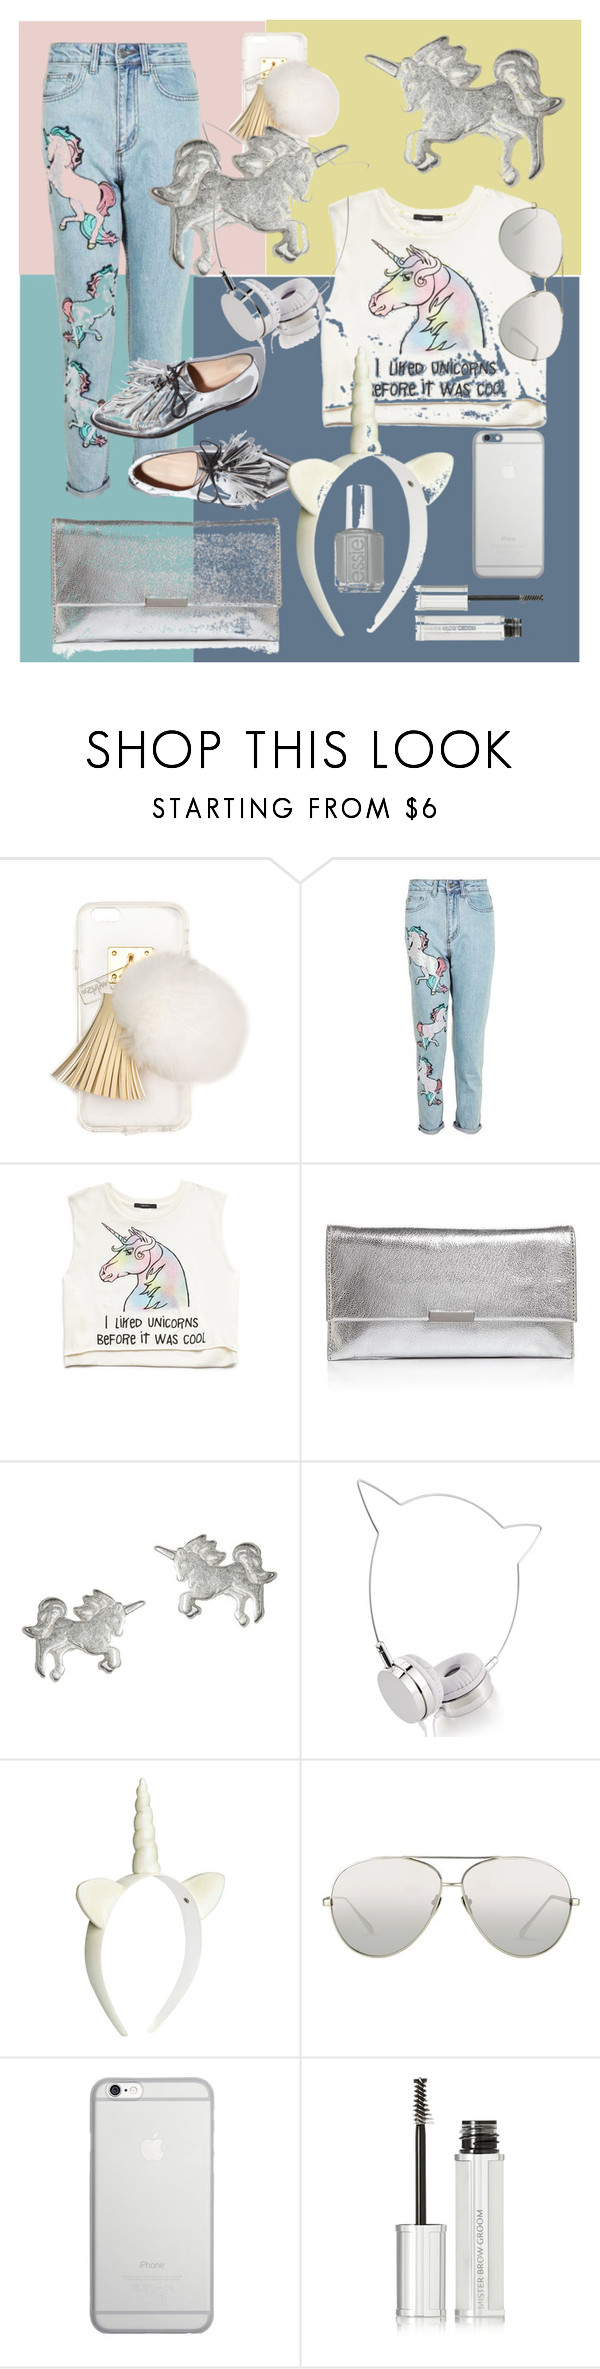 """""""Corn"""" by nikiforenko-katia ❤ liked on Polyvore featuring Ashlyn'd, Topshop, Forever 21, Loeffler Randall, Dogeared, Skinnydip, Linda Farrow, Native Union and Givenchy"""